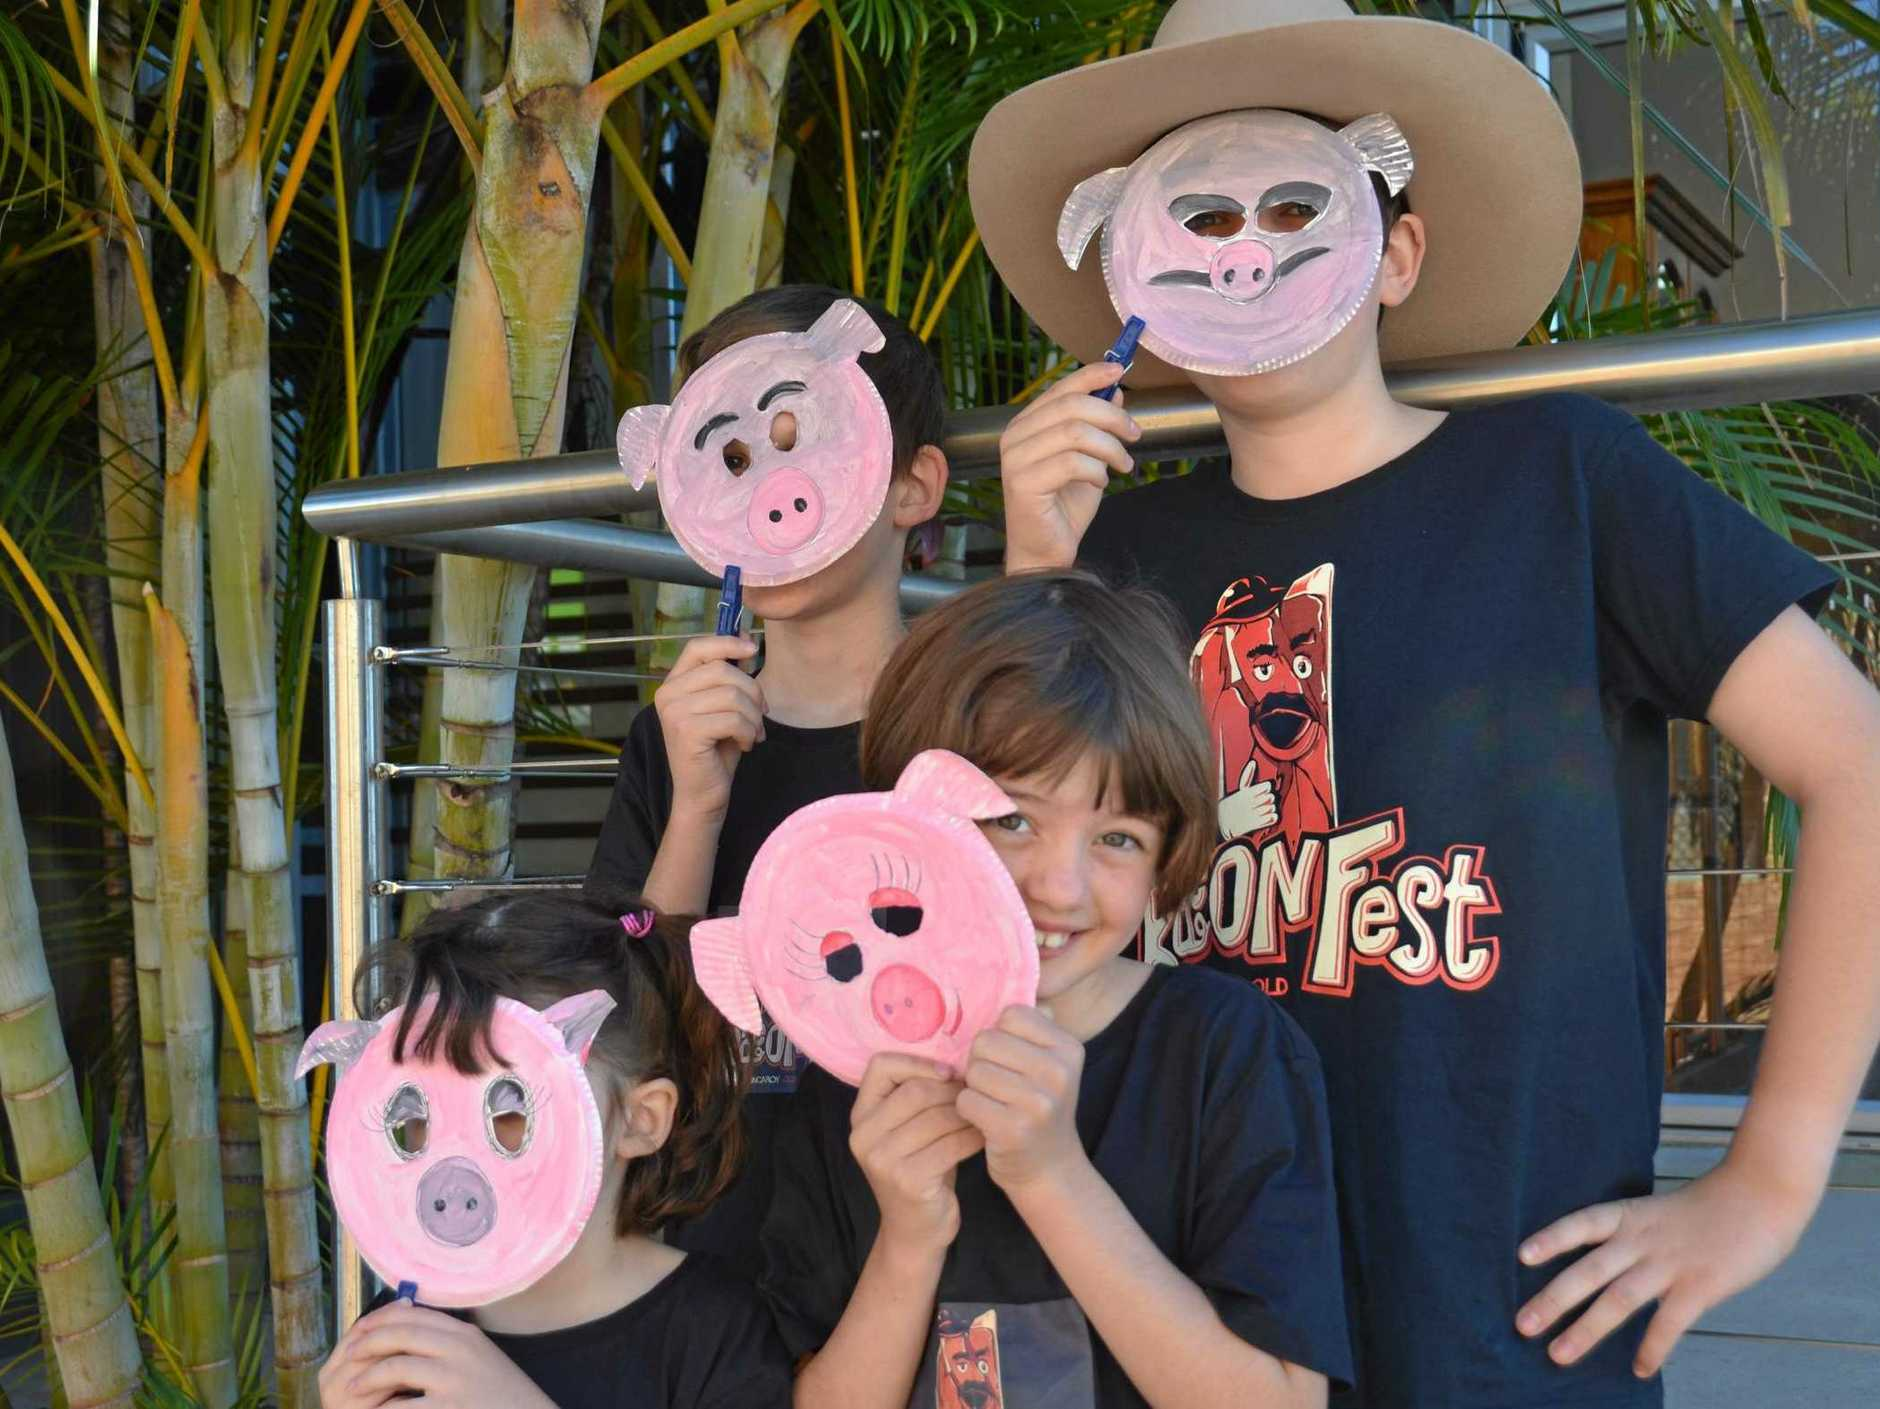 LITTLE PIGGIES: Jessica Mungall and siblings are excited for this year's BaconFest Little Piggies activities.